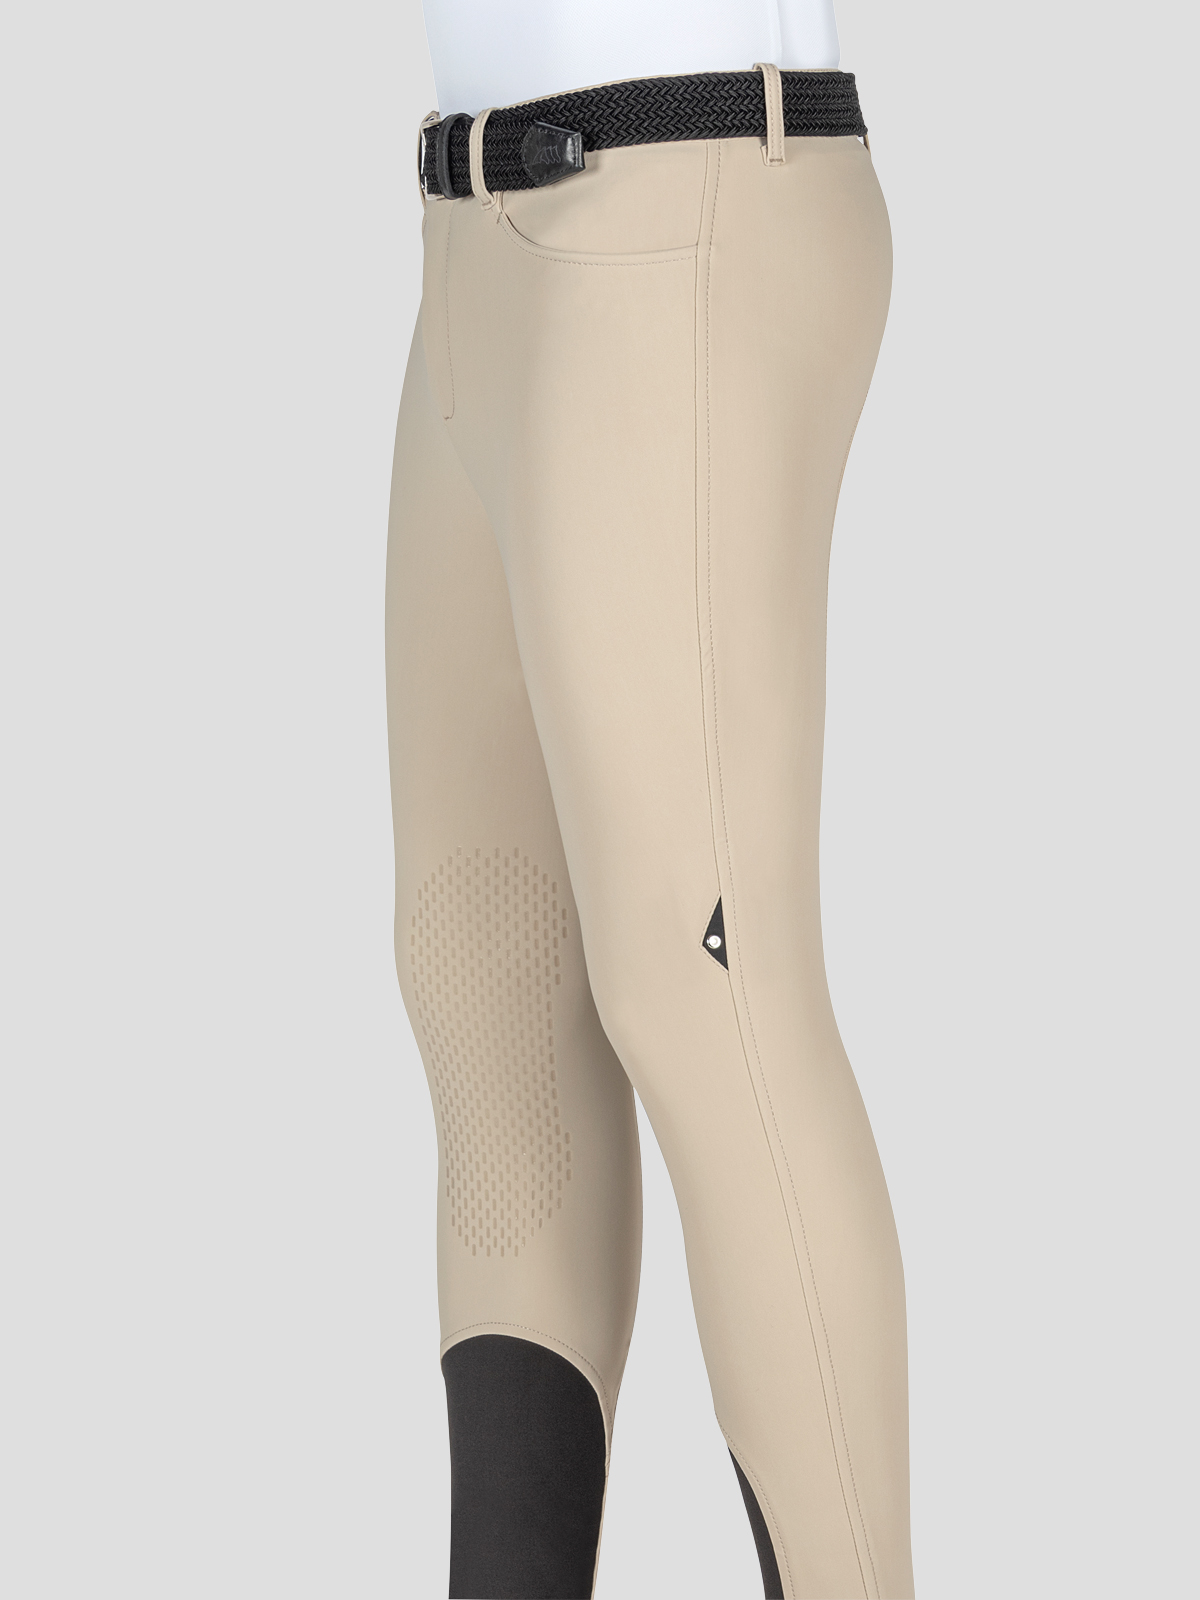 GRENTK MEN'S B-MOVE KNEE GRIP BREECHES 6